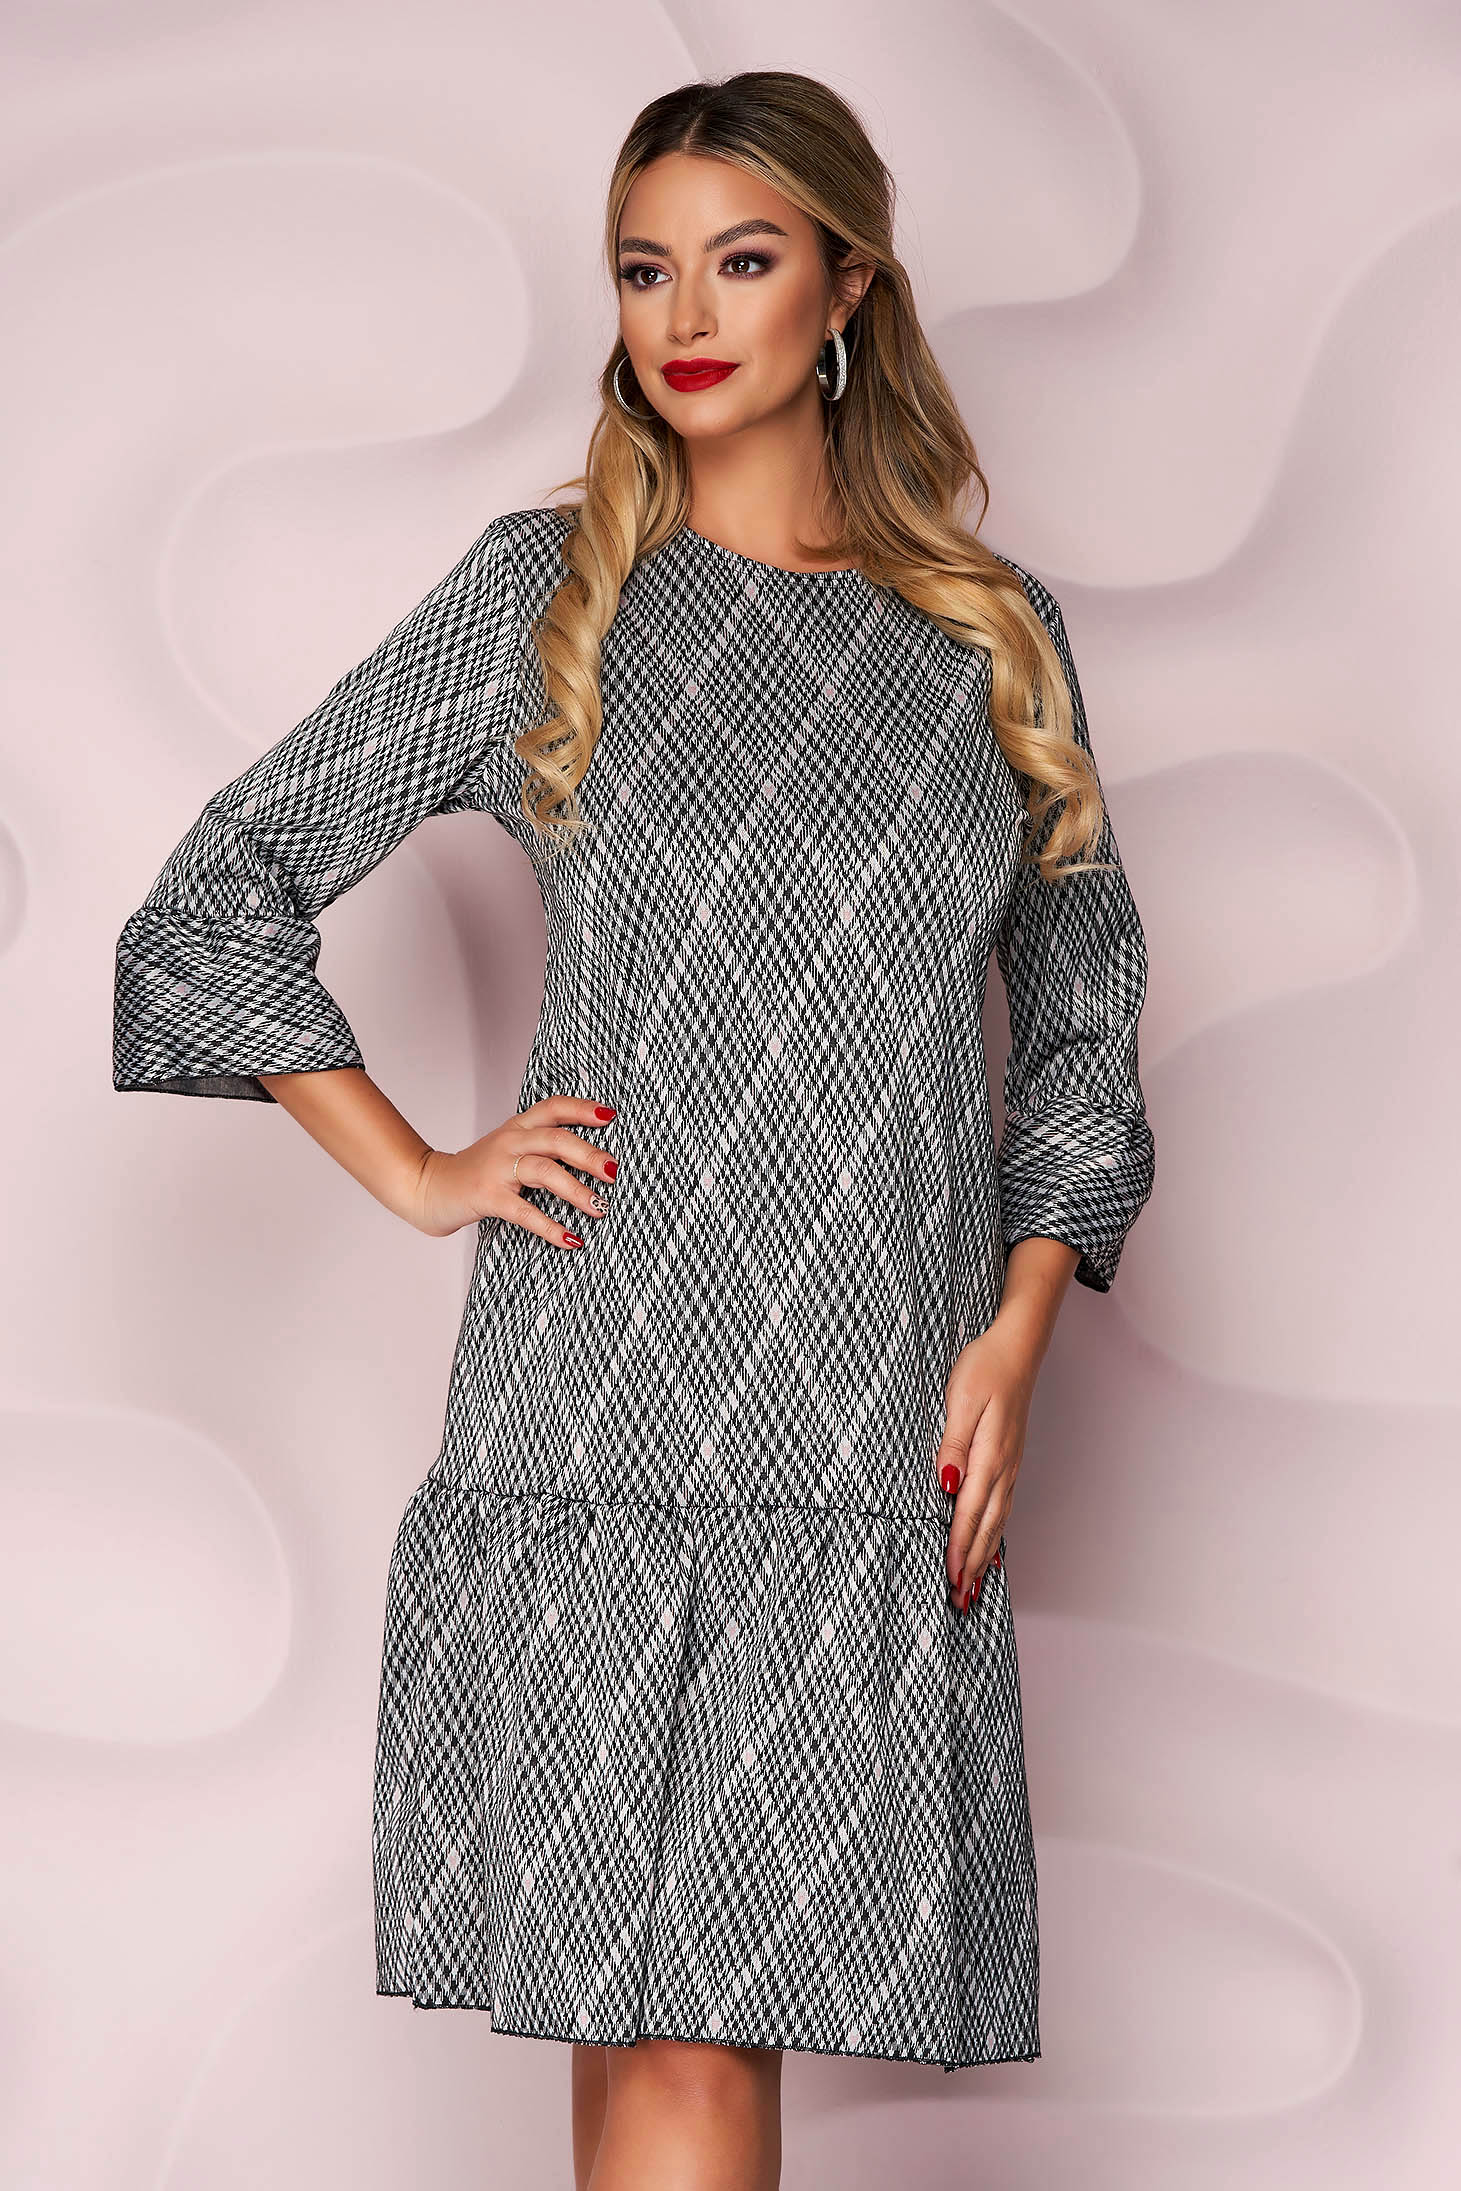 Dress office straight midi thin fabric from elastic fabric with ruffles at the buttom of the dress